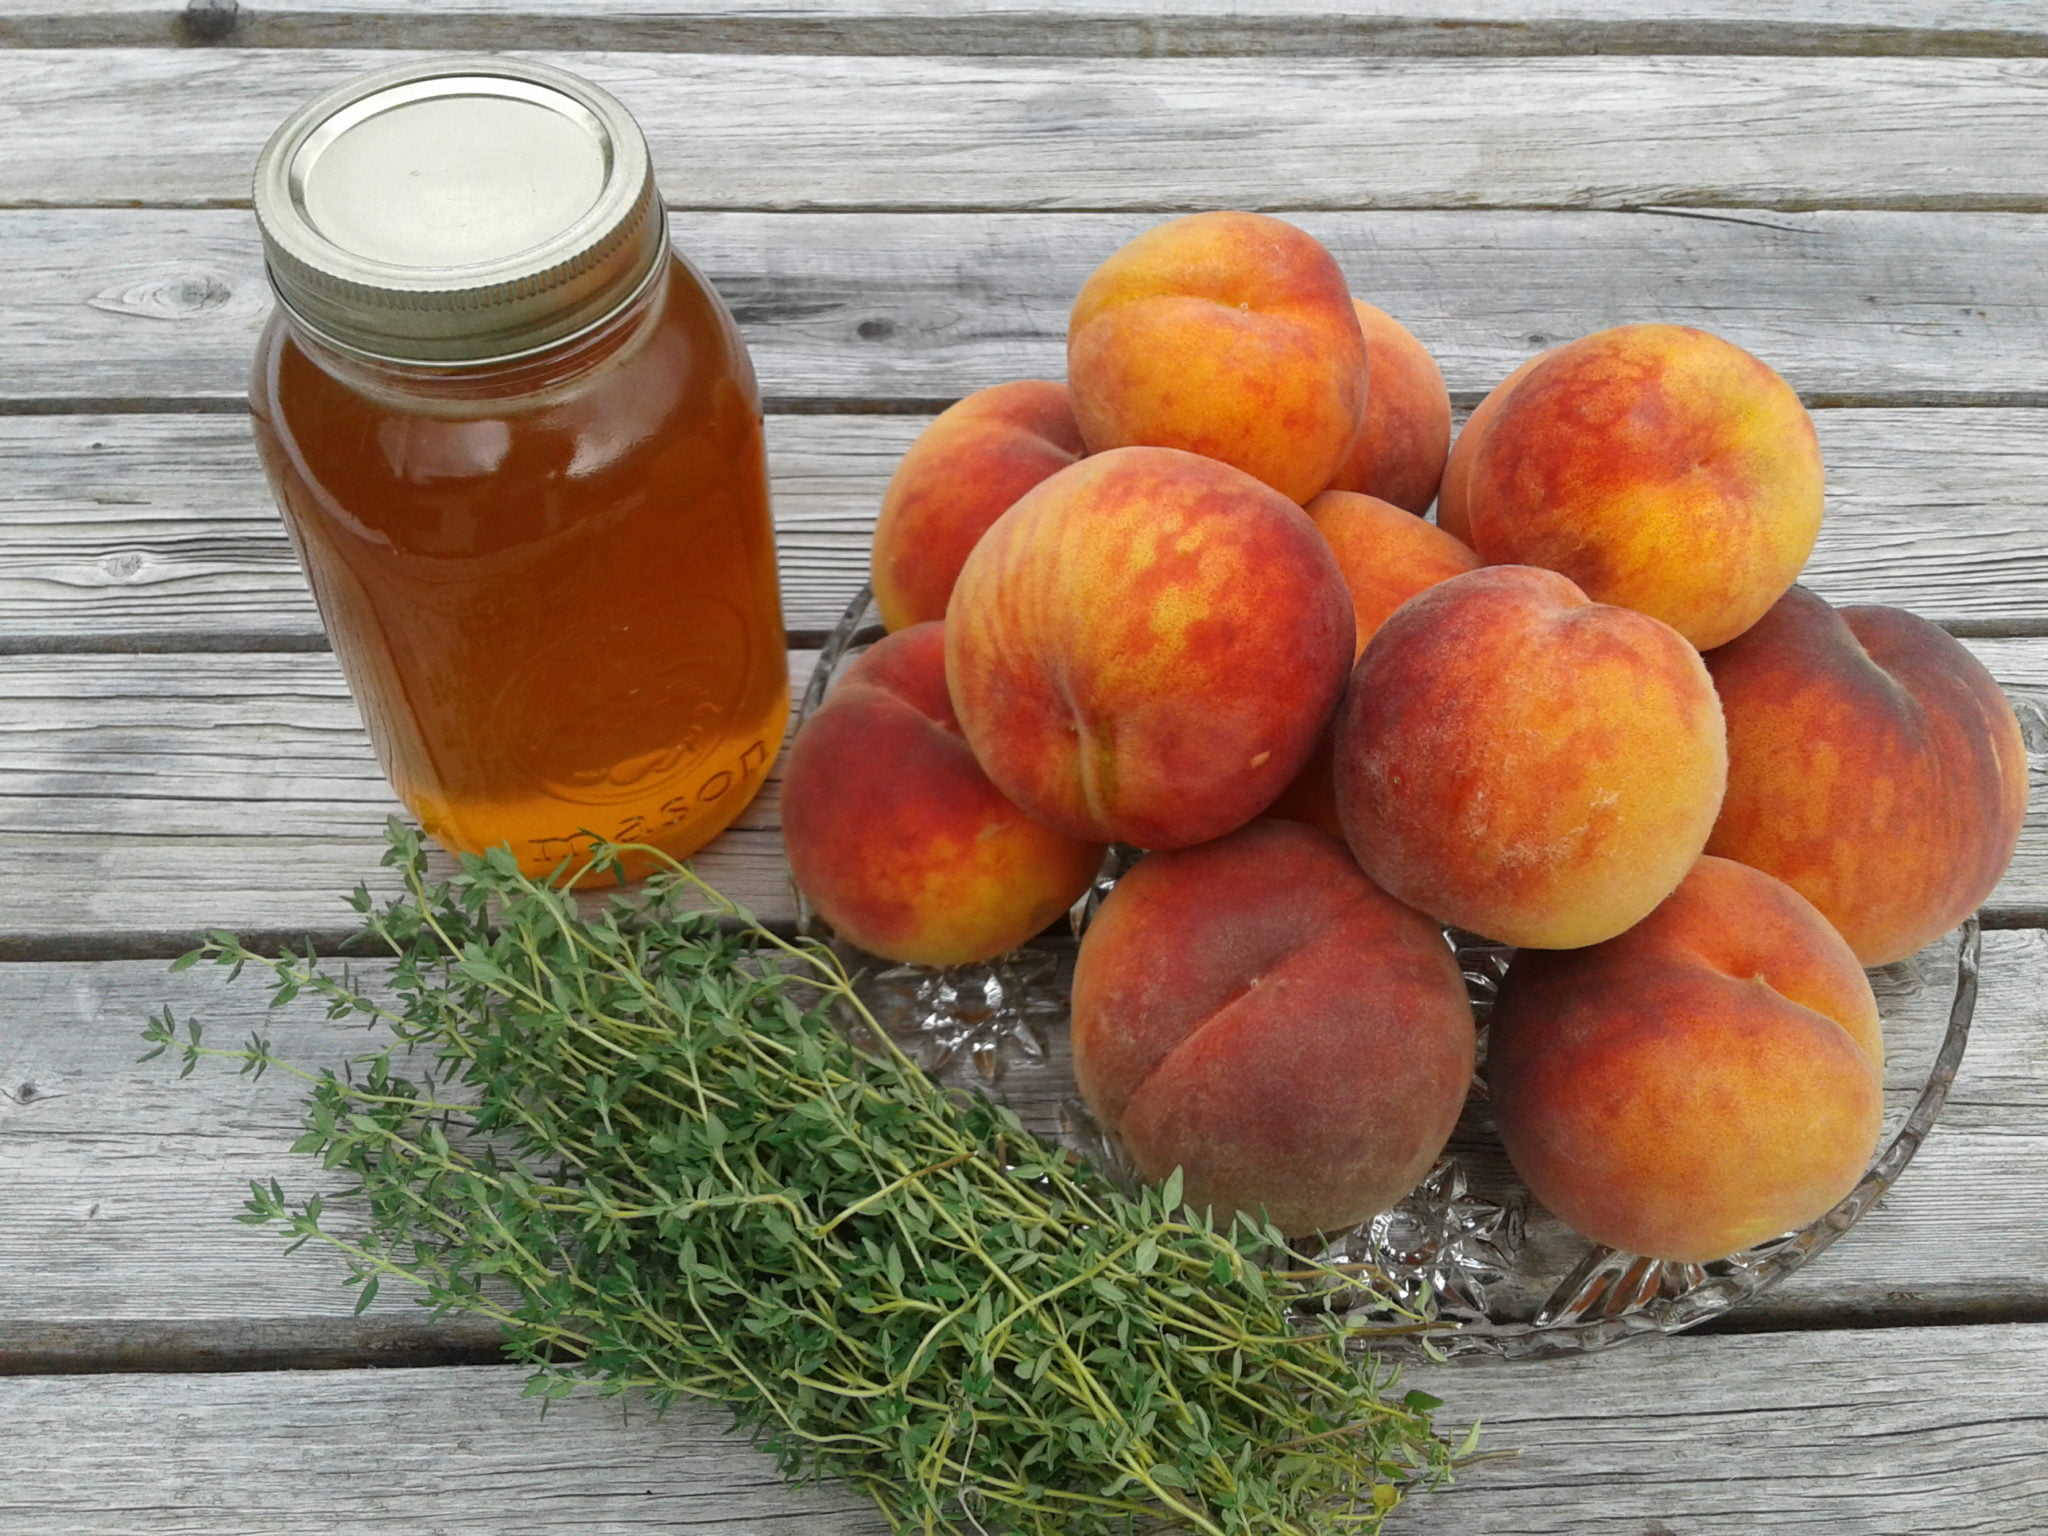 Broiled Glohaven Peaches With Thymed Honey